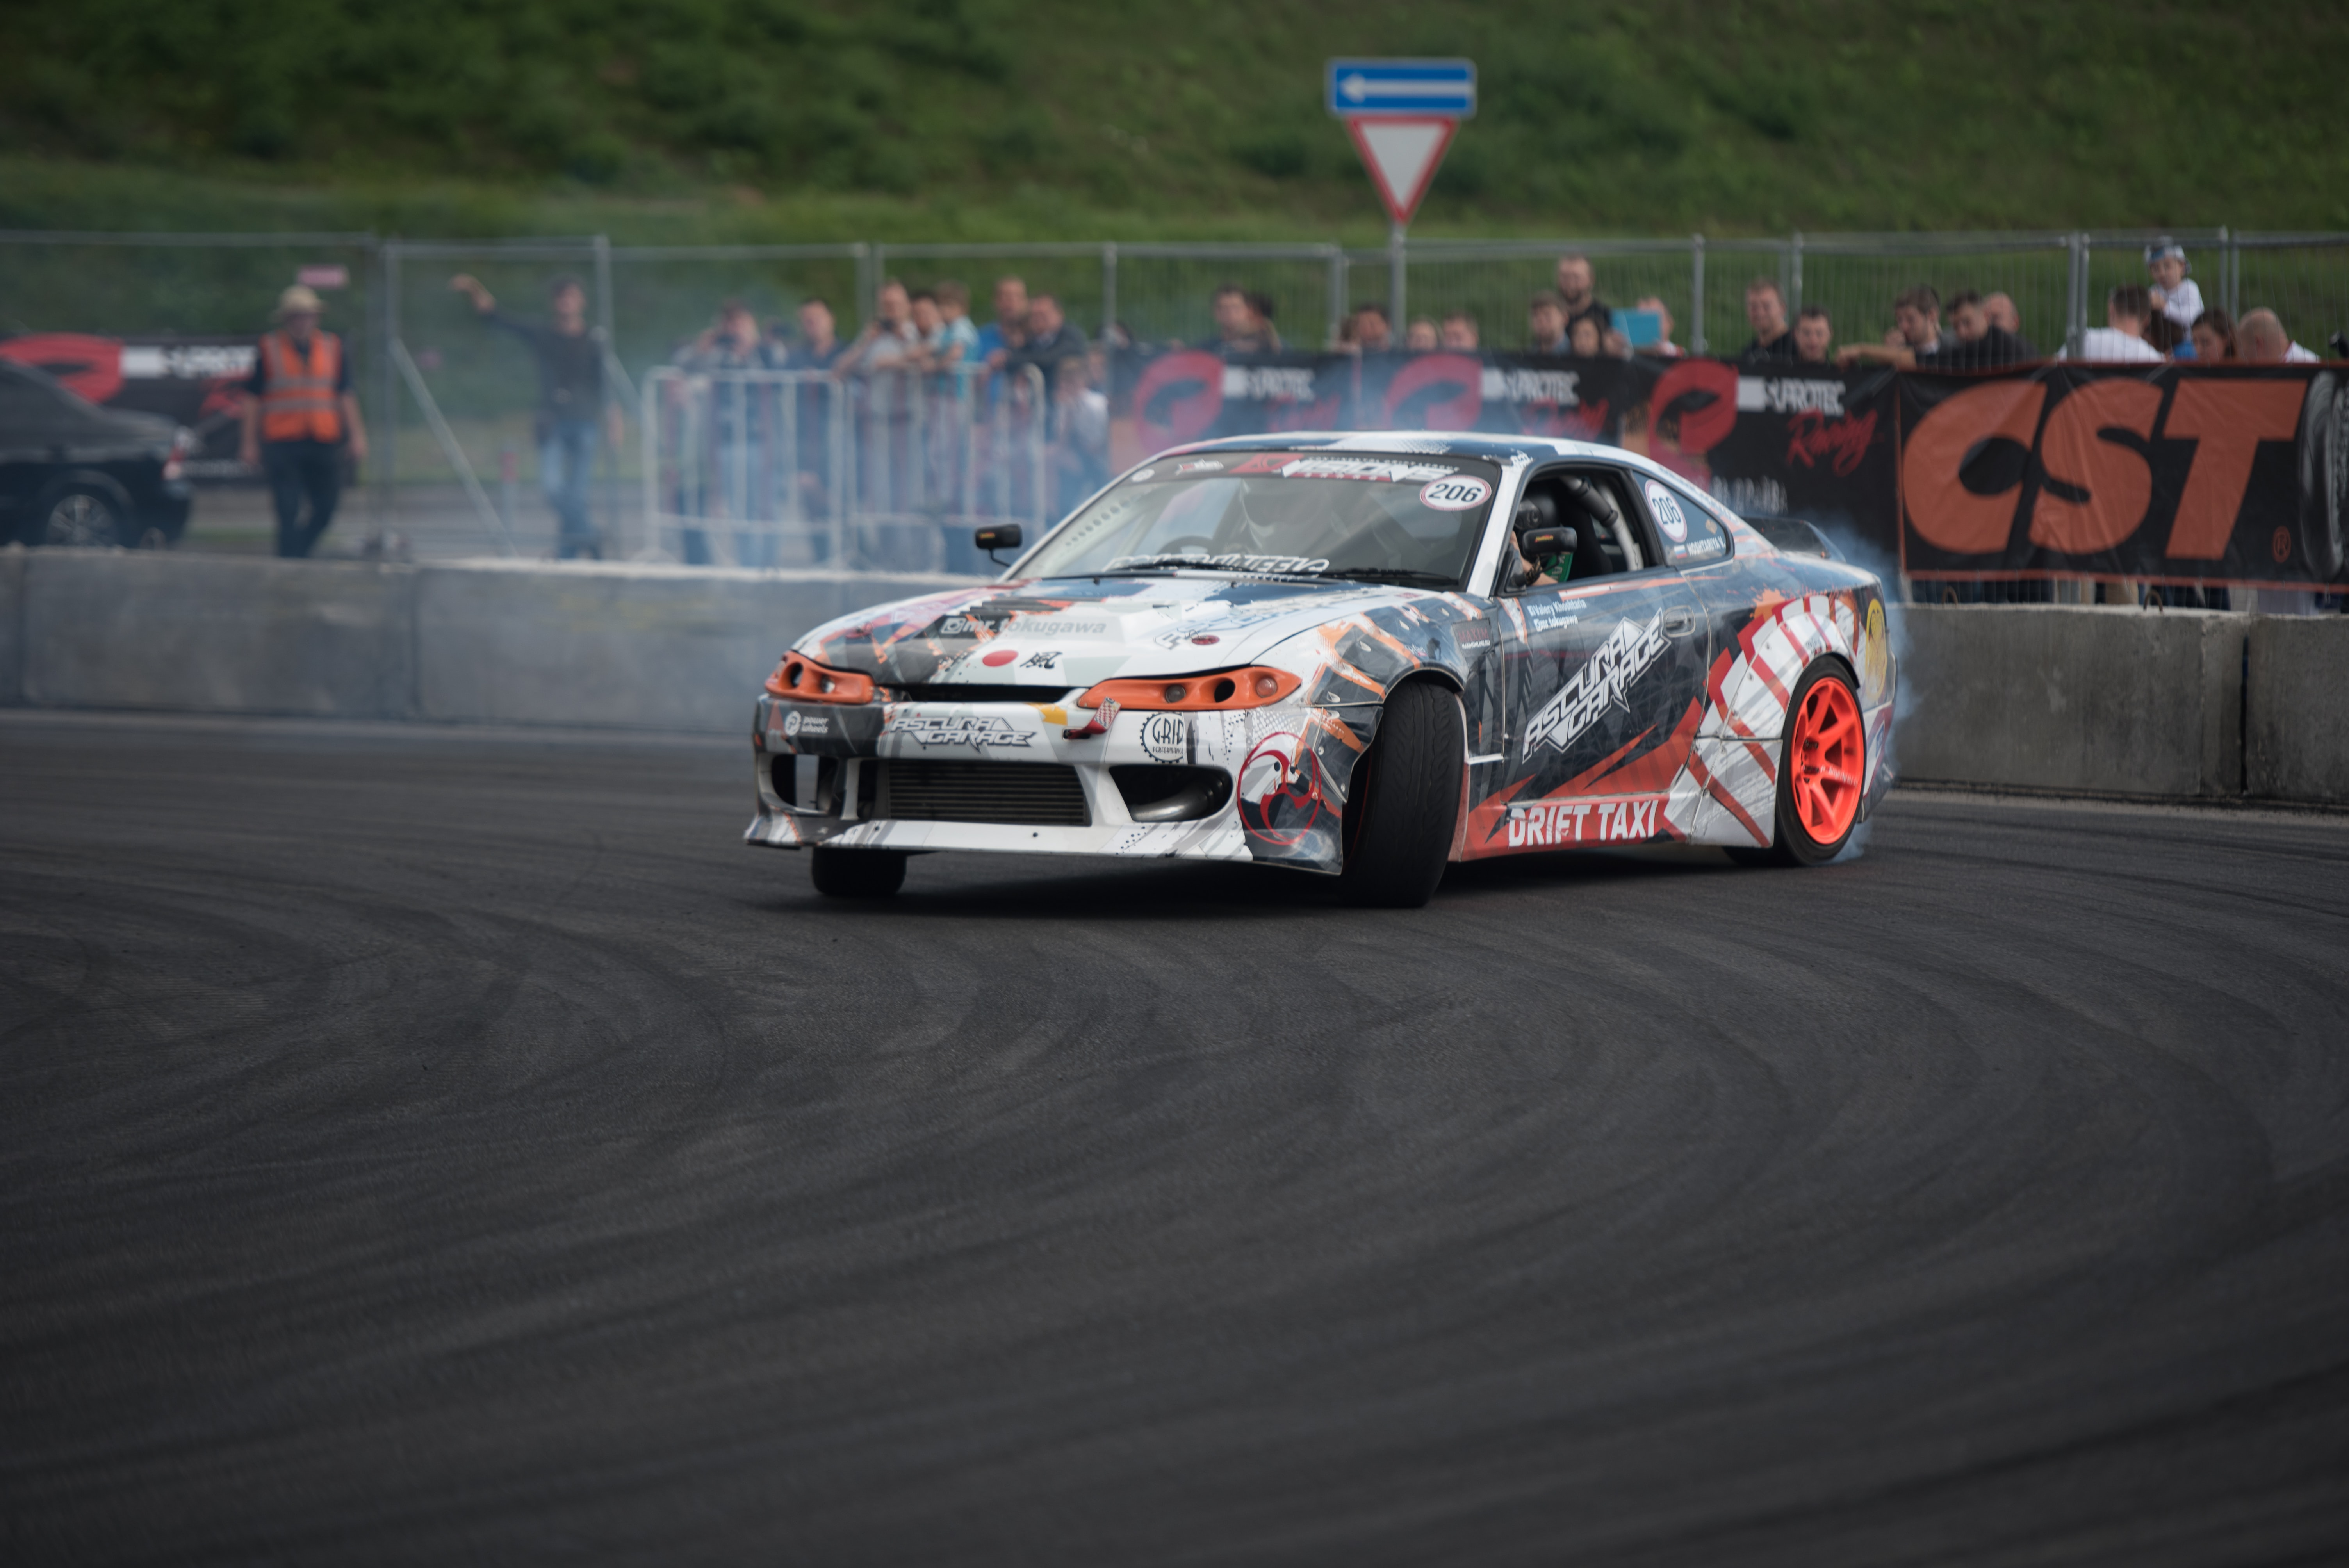 A race car drifting at fast speed along a race track